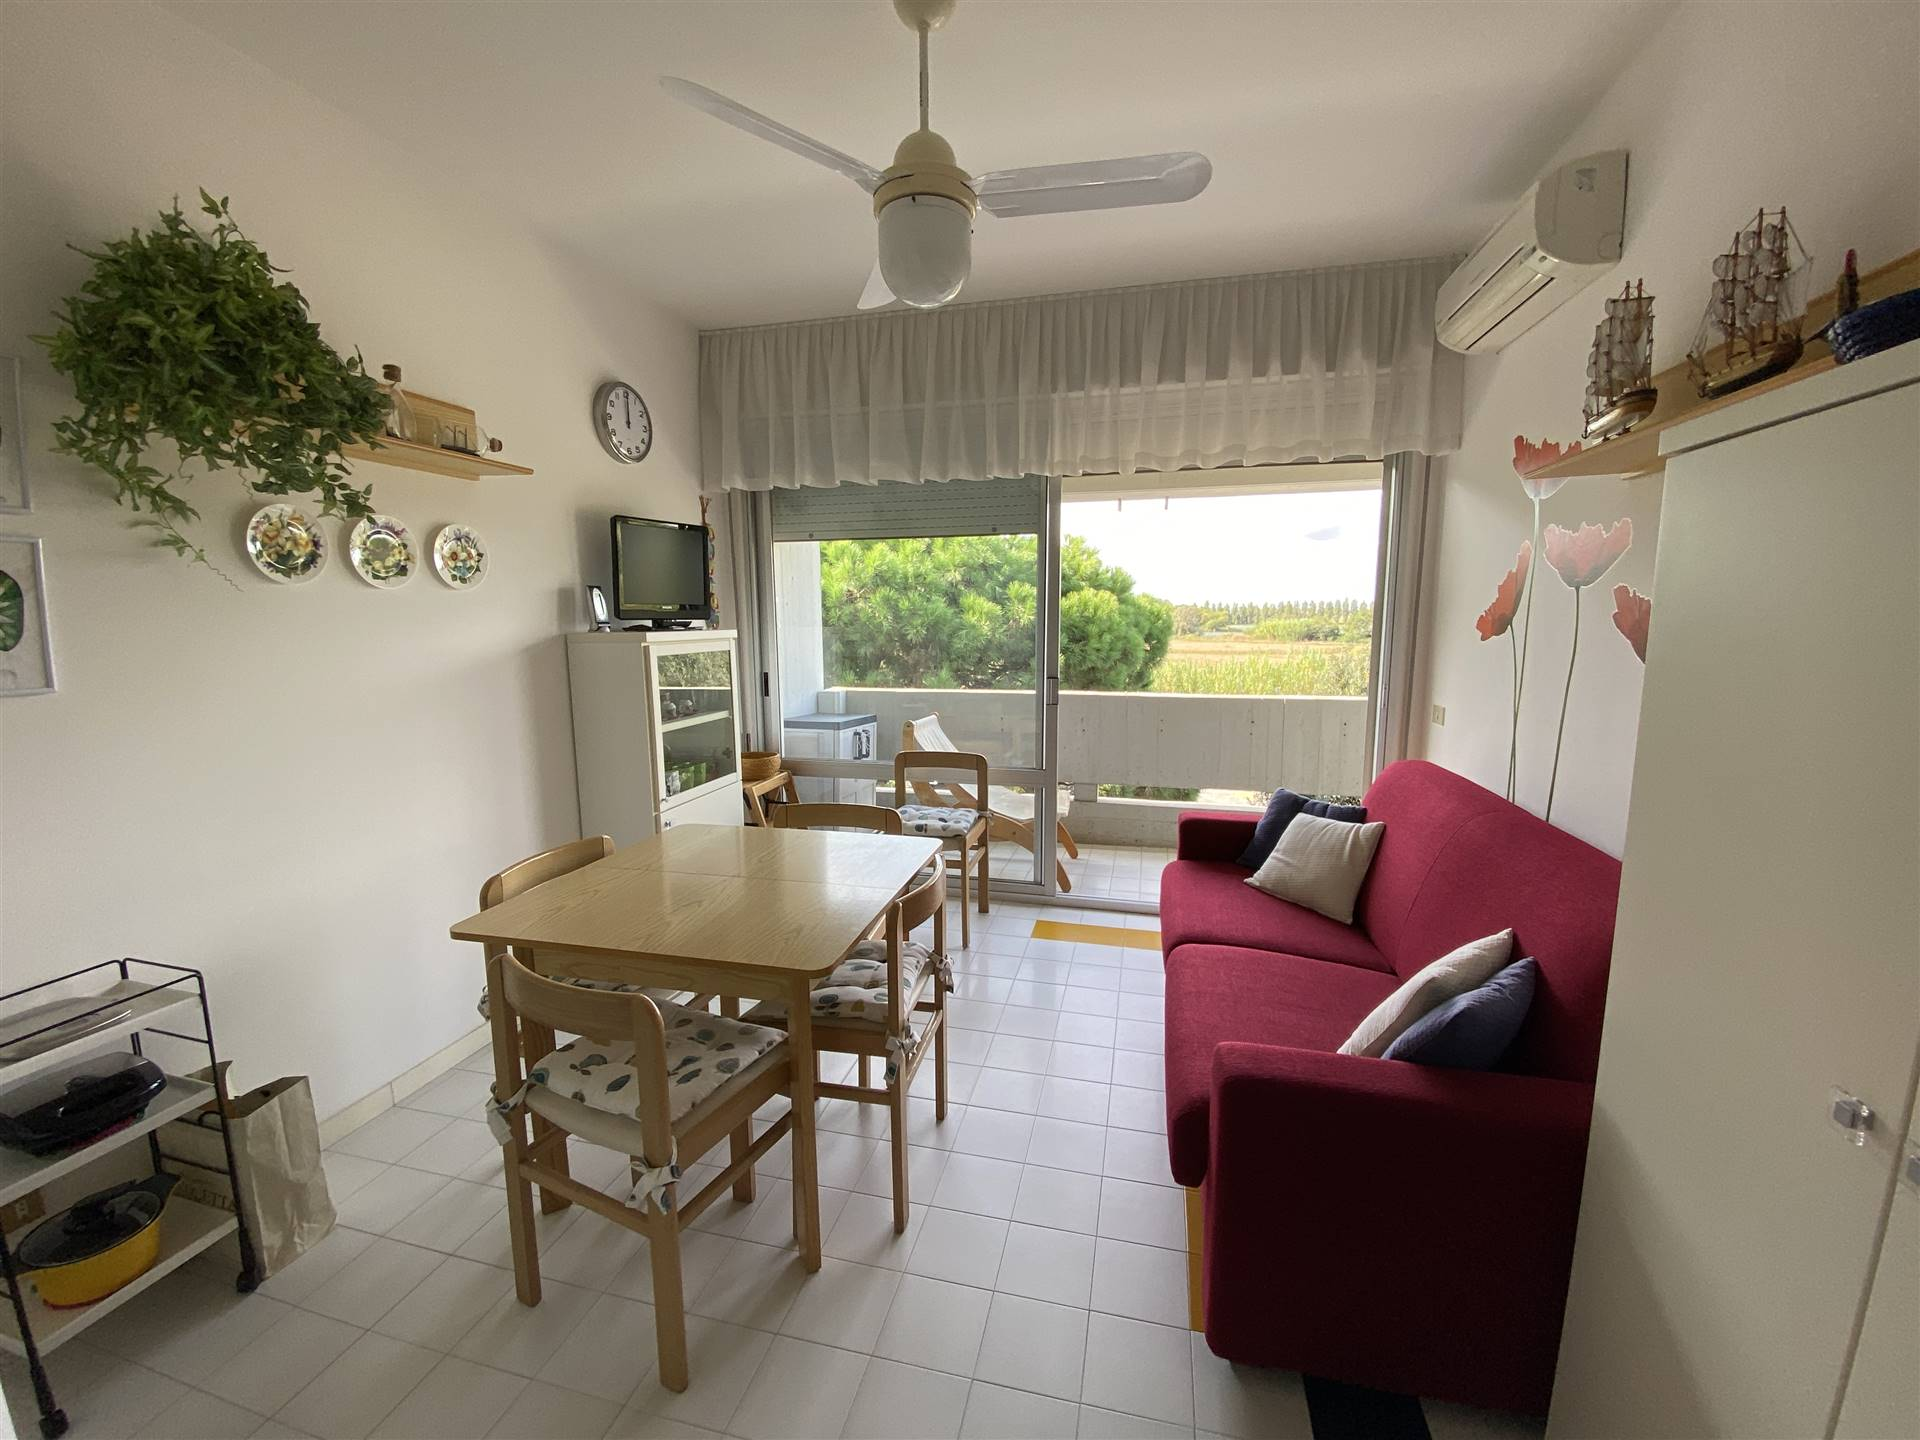 ISOLA VERDE, CHIOGGIA, Apartment for sale, Good condition, Energetic class: G, placed at 2°, composed by: 3 Rooms, Separate kitchen, 2 Bedrooms, 1